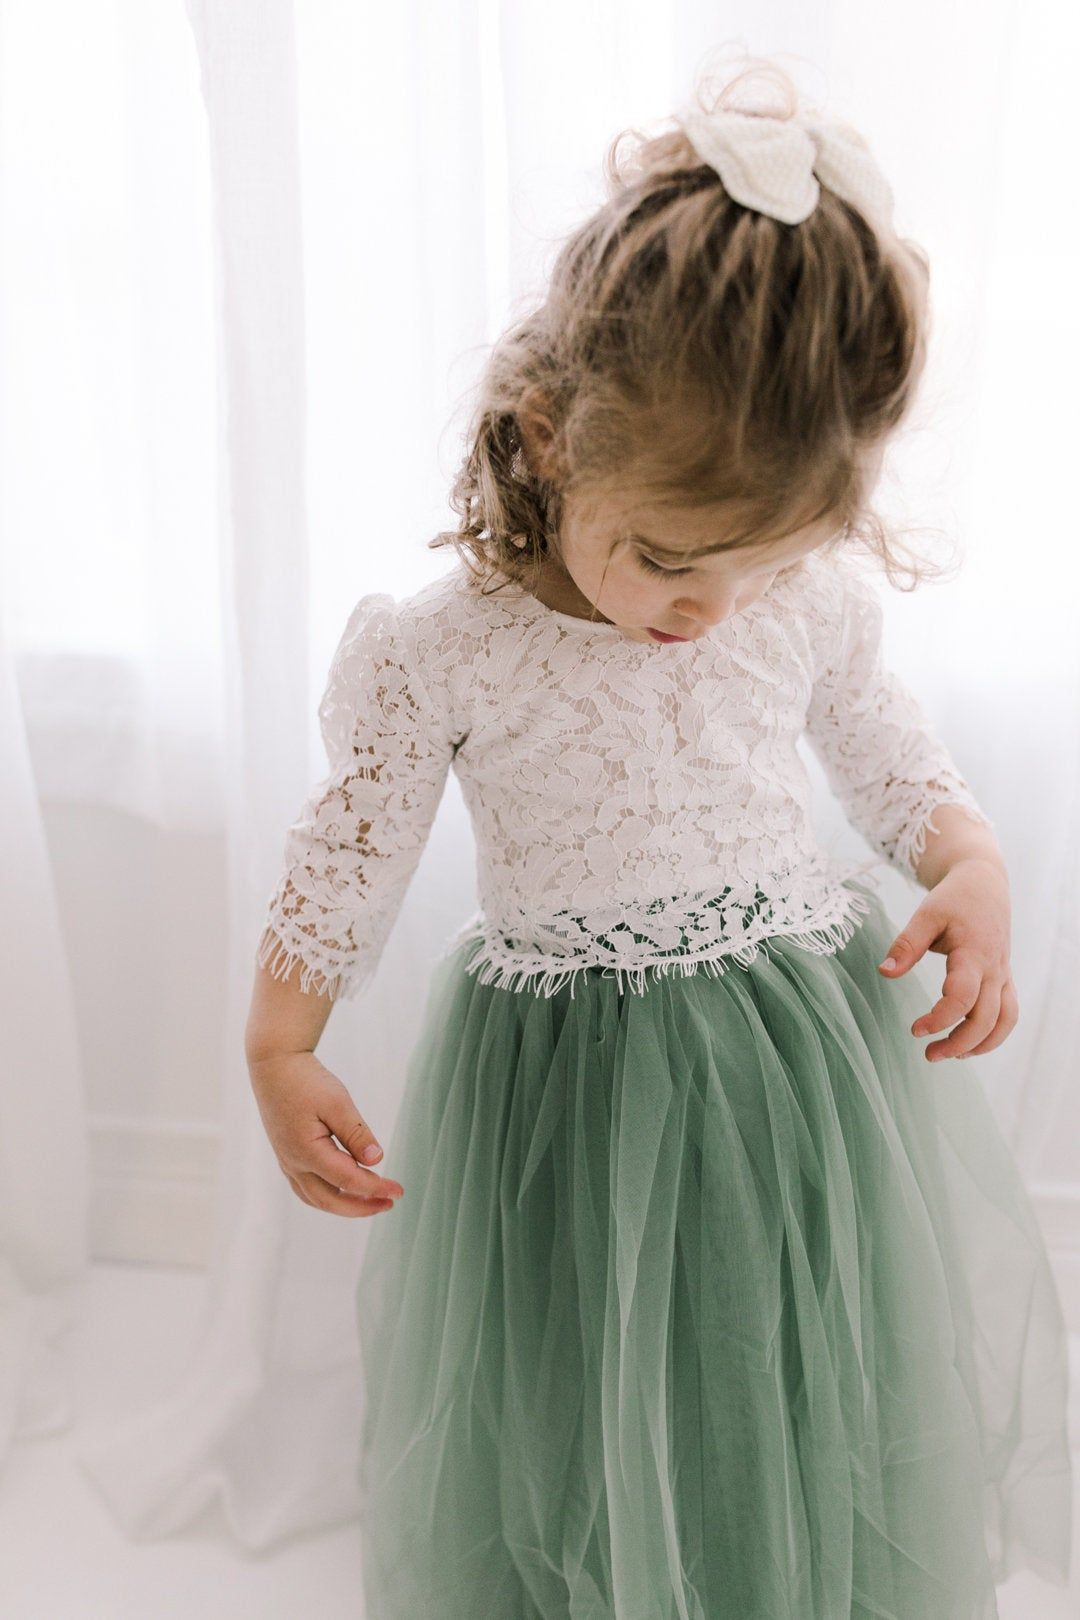 Sage Green Tulle Two Piece Tutu Skirt, White Lace Flower Girl Dress, Boho Beach Moss Wedding